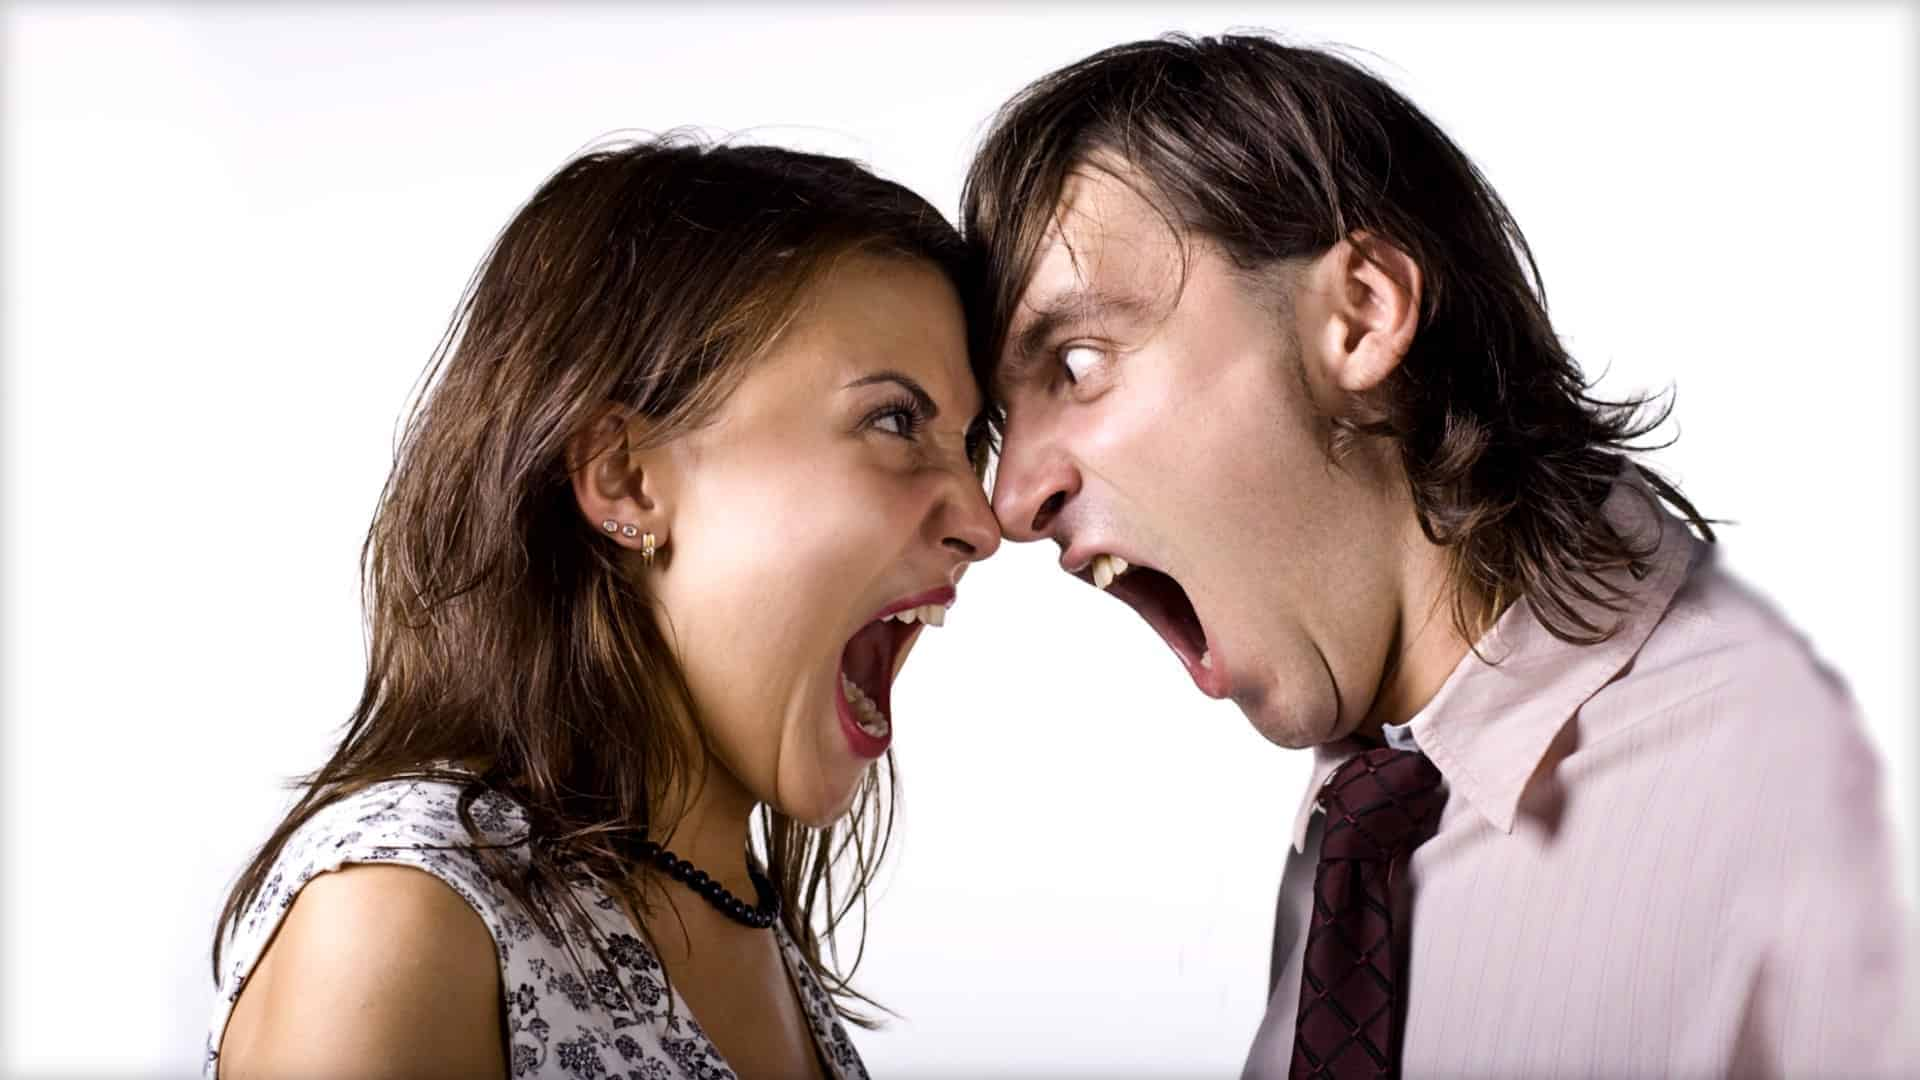 Two people are shown, in each other's face, screaming and angry.